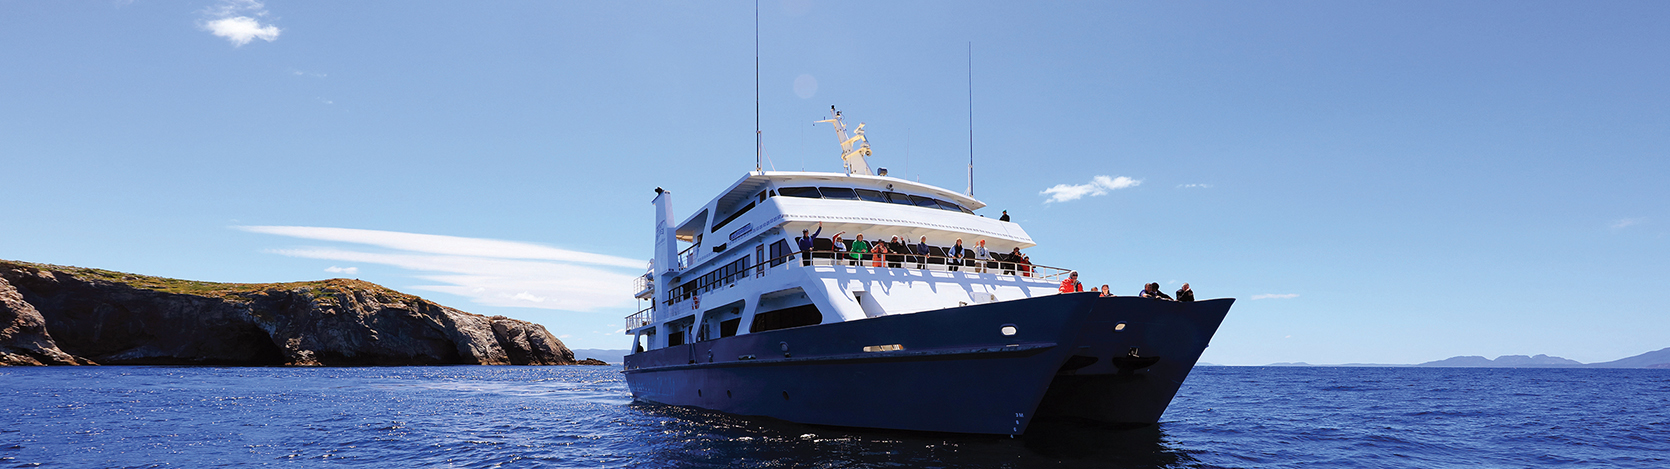 Coral Expeditions I, the ship servicing Sepik River Scouting Expedition